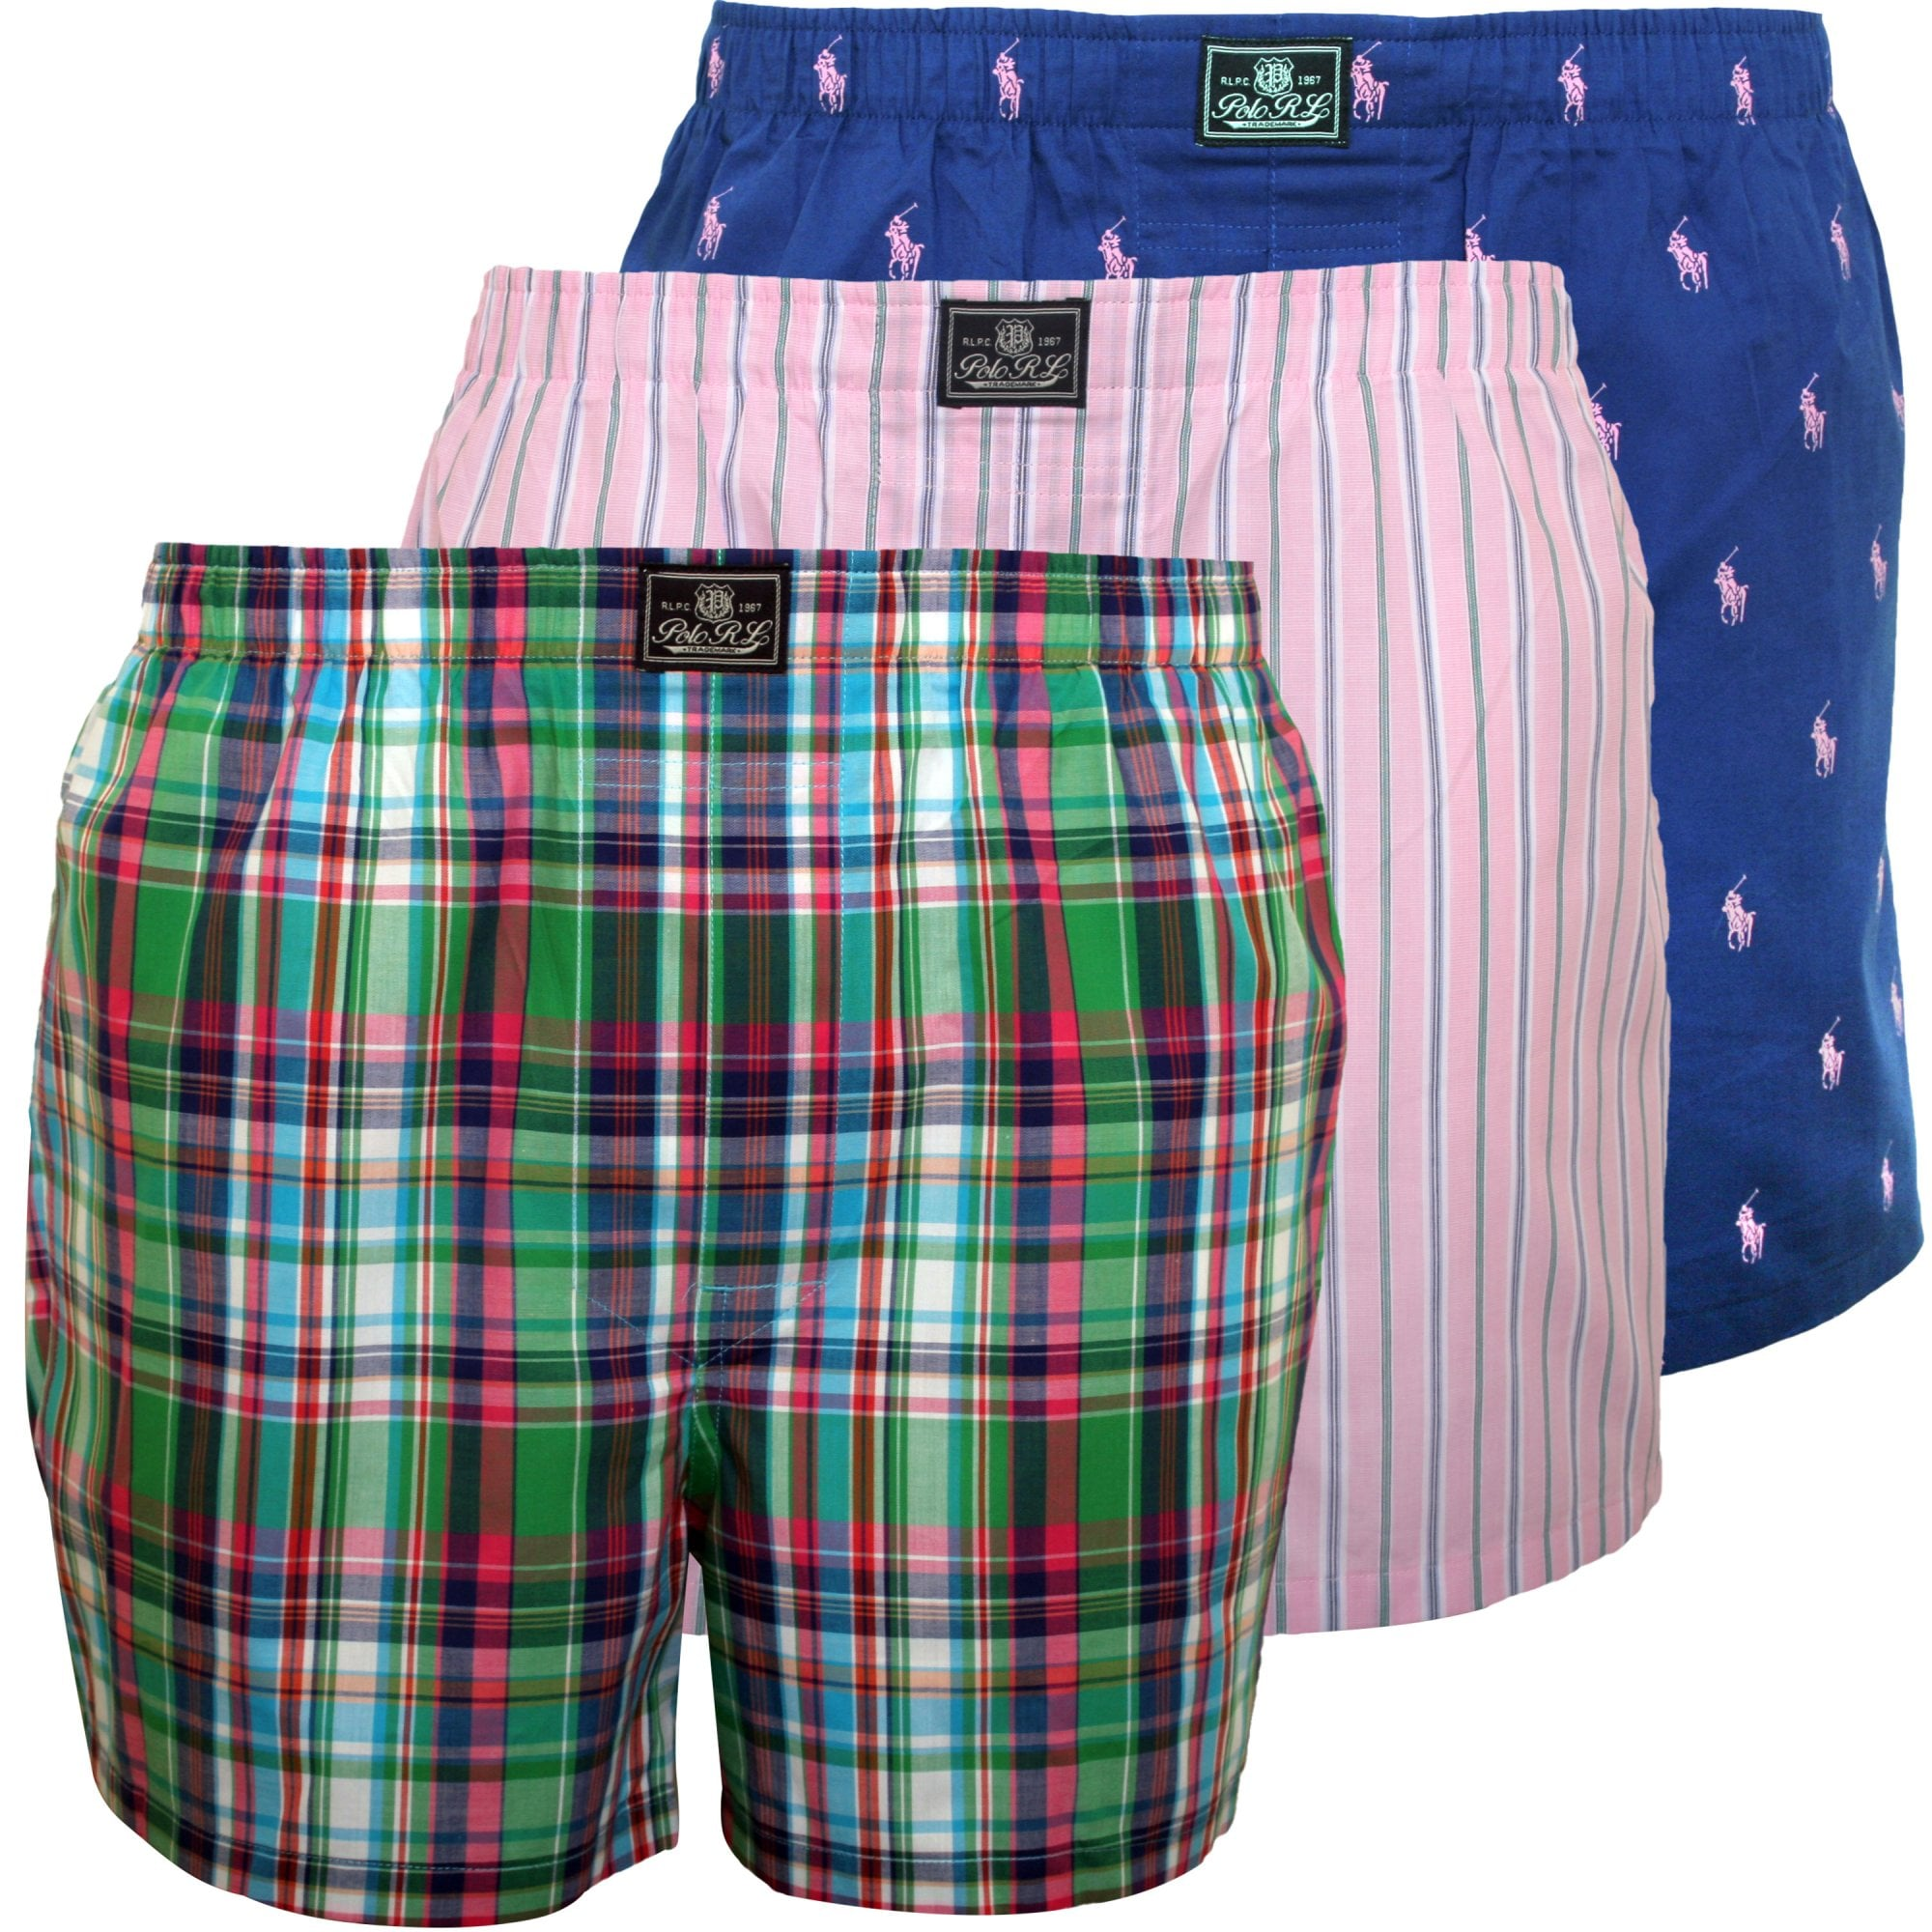 Original Penguin Boys 4-Pack Woven Boxer Shorts